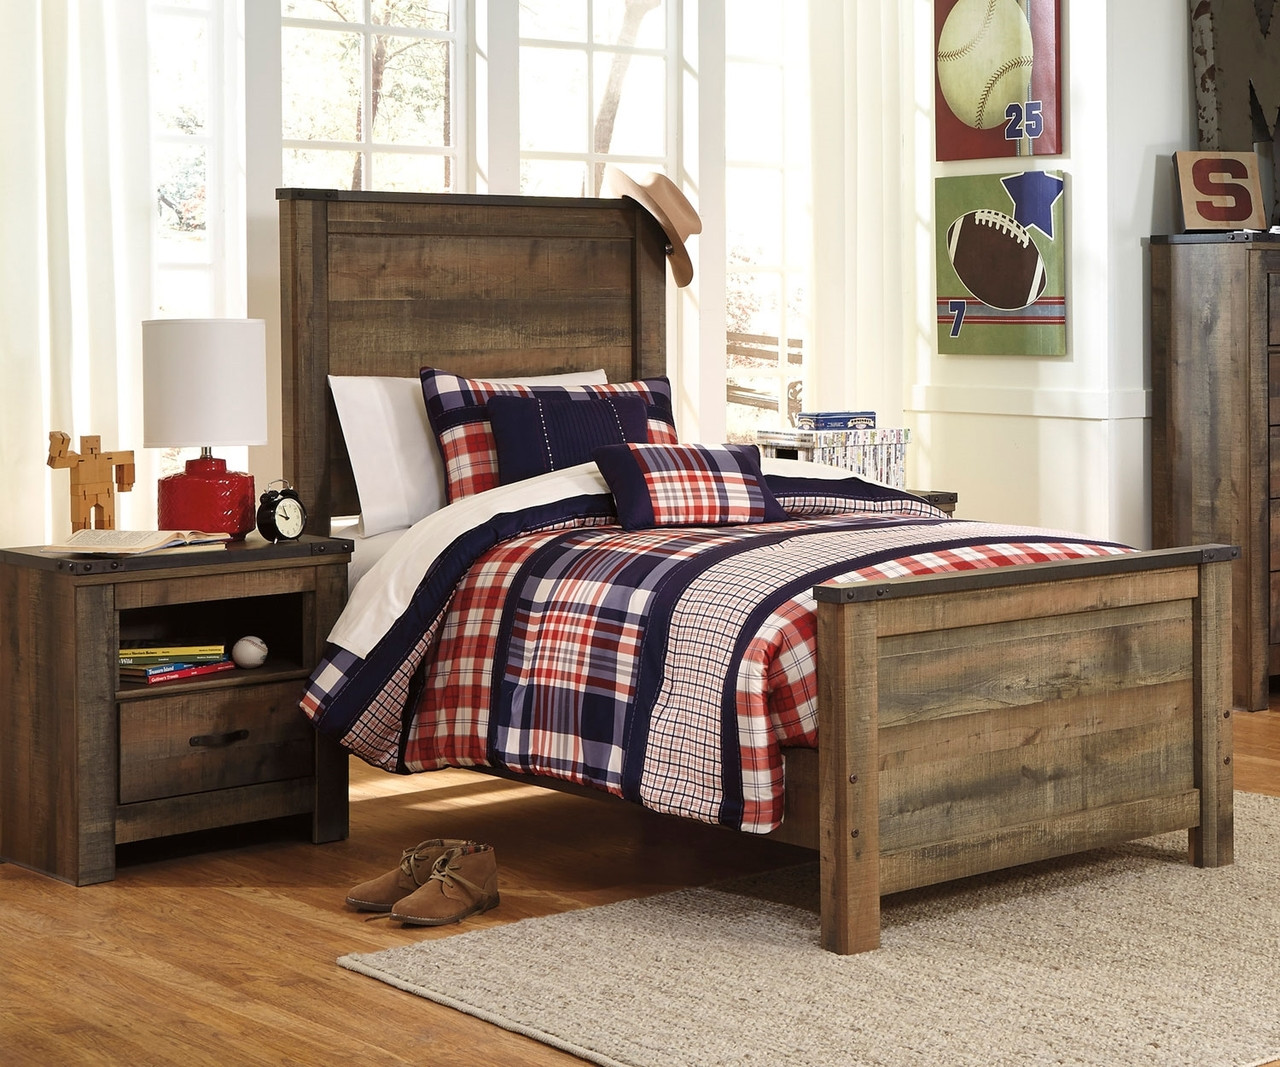 Ashley Furniture Tampa Fl: Trinell B446 Twin Size Panel Bed